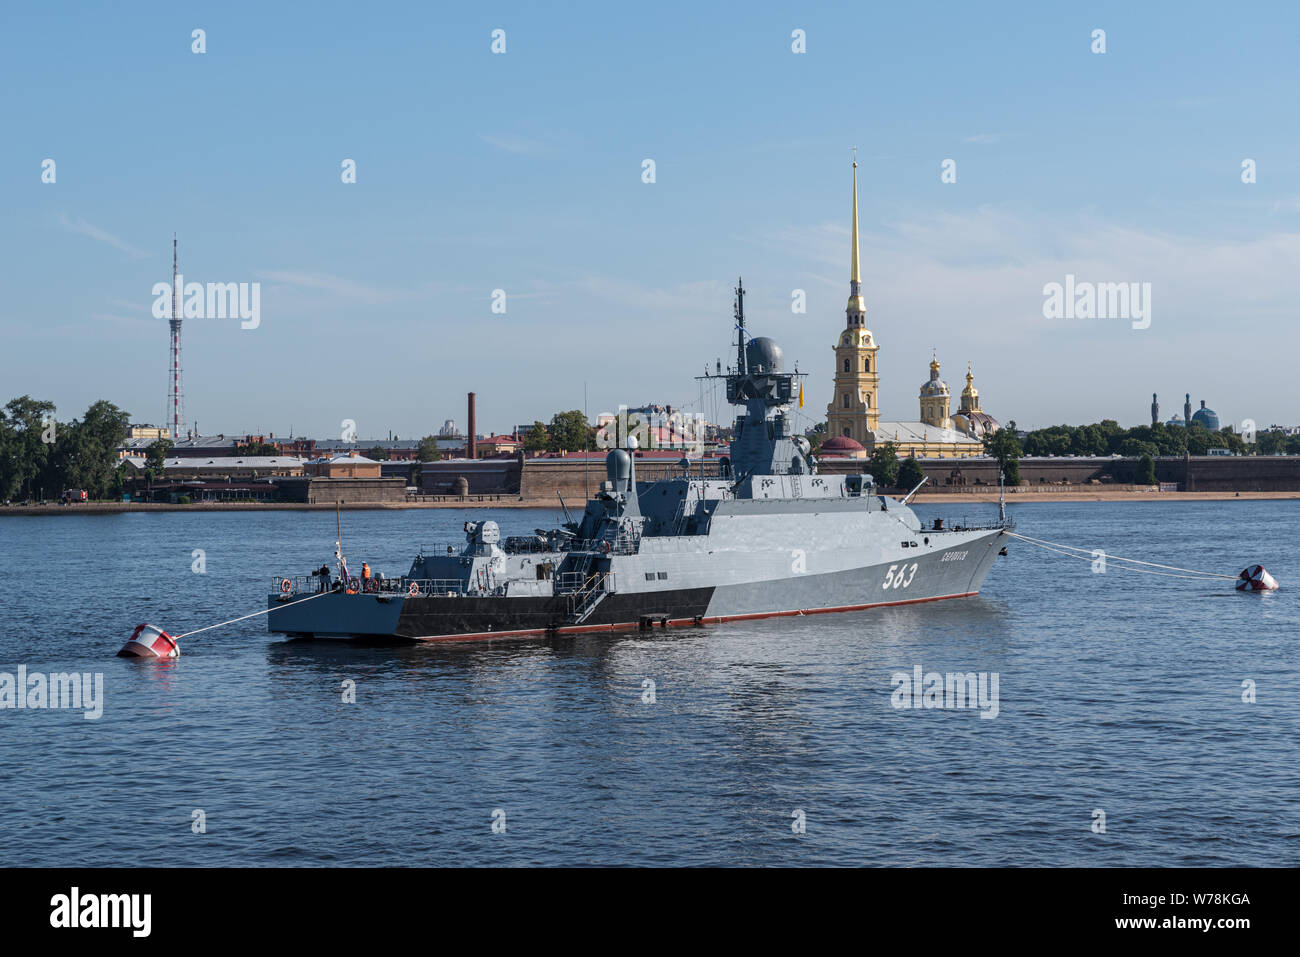 Snkt-Peterbrug, Russia - July 21, 2019: Naval parade on Day of the Navy of Russia. Military destroyer on the Neva near Peter-Pavel's Fortress.  St. Pe Stock Photo